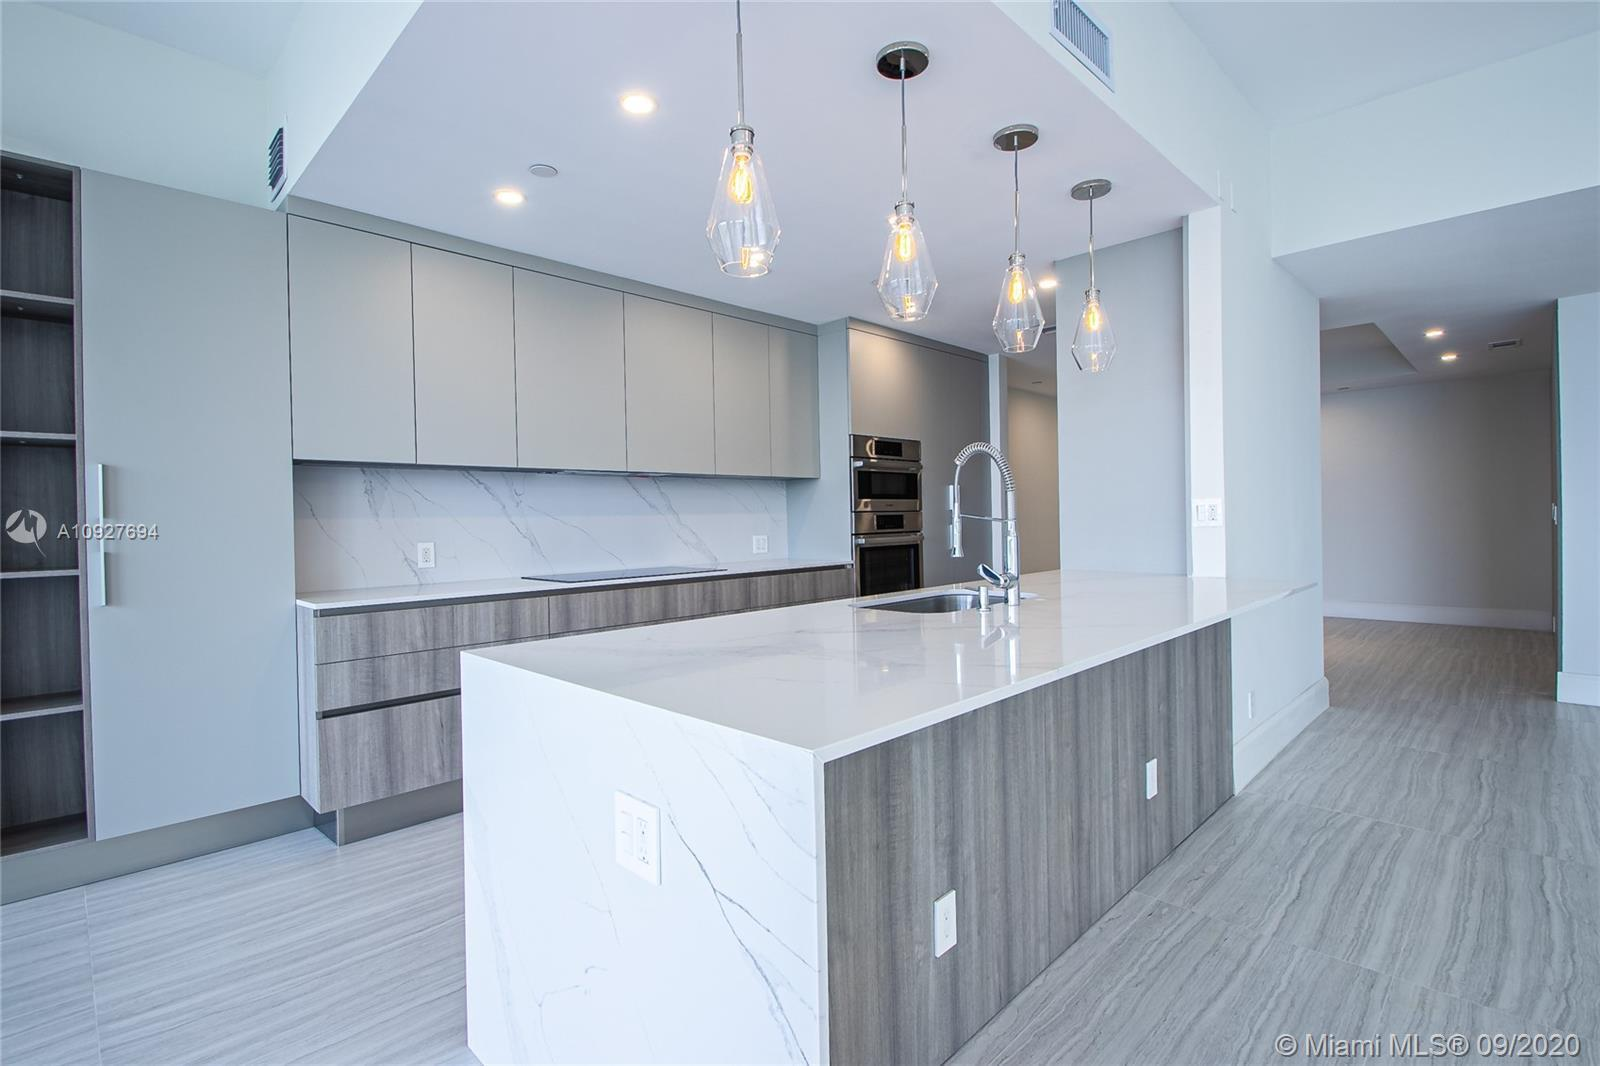 NEW!! WILLIAMS ISLAND LUXURIOUS TOWNHOME. THIS FULLY RENOVATED 3 BEDROOM PLUS DEN,  3.5 BATHROOM TO